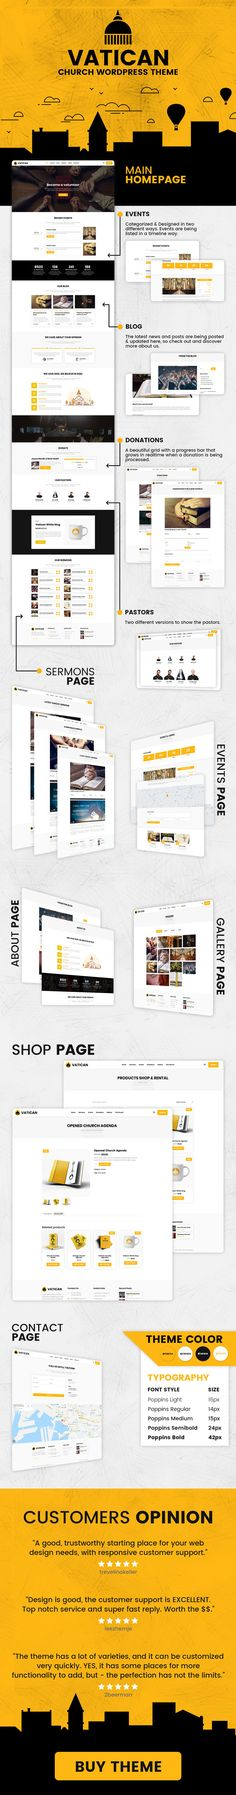 Buy Vatican - Church WordPress Theme by modeltheme on ThemeForest. Vatican is the latest WordPress Theme for Churches, Mosques or simply for Donations or Fundraising websites. Fundraising Sites, Web Themes, Premium Wordpress Themes, Vatican, Website Template, Things To Come, Social Media, Website Ideas, Mosques